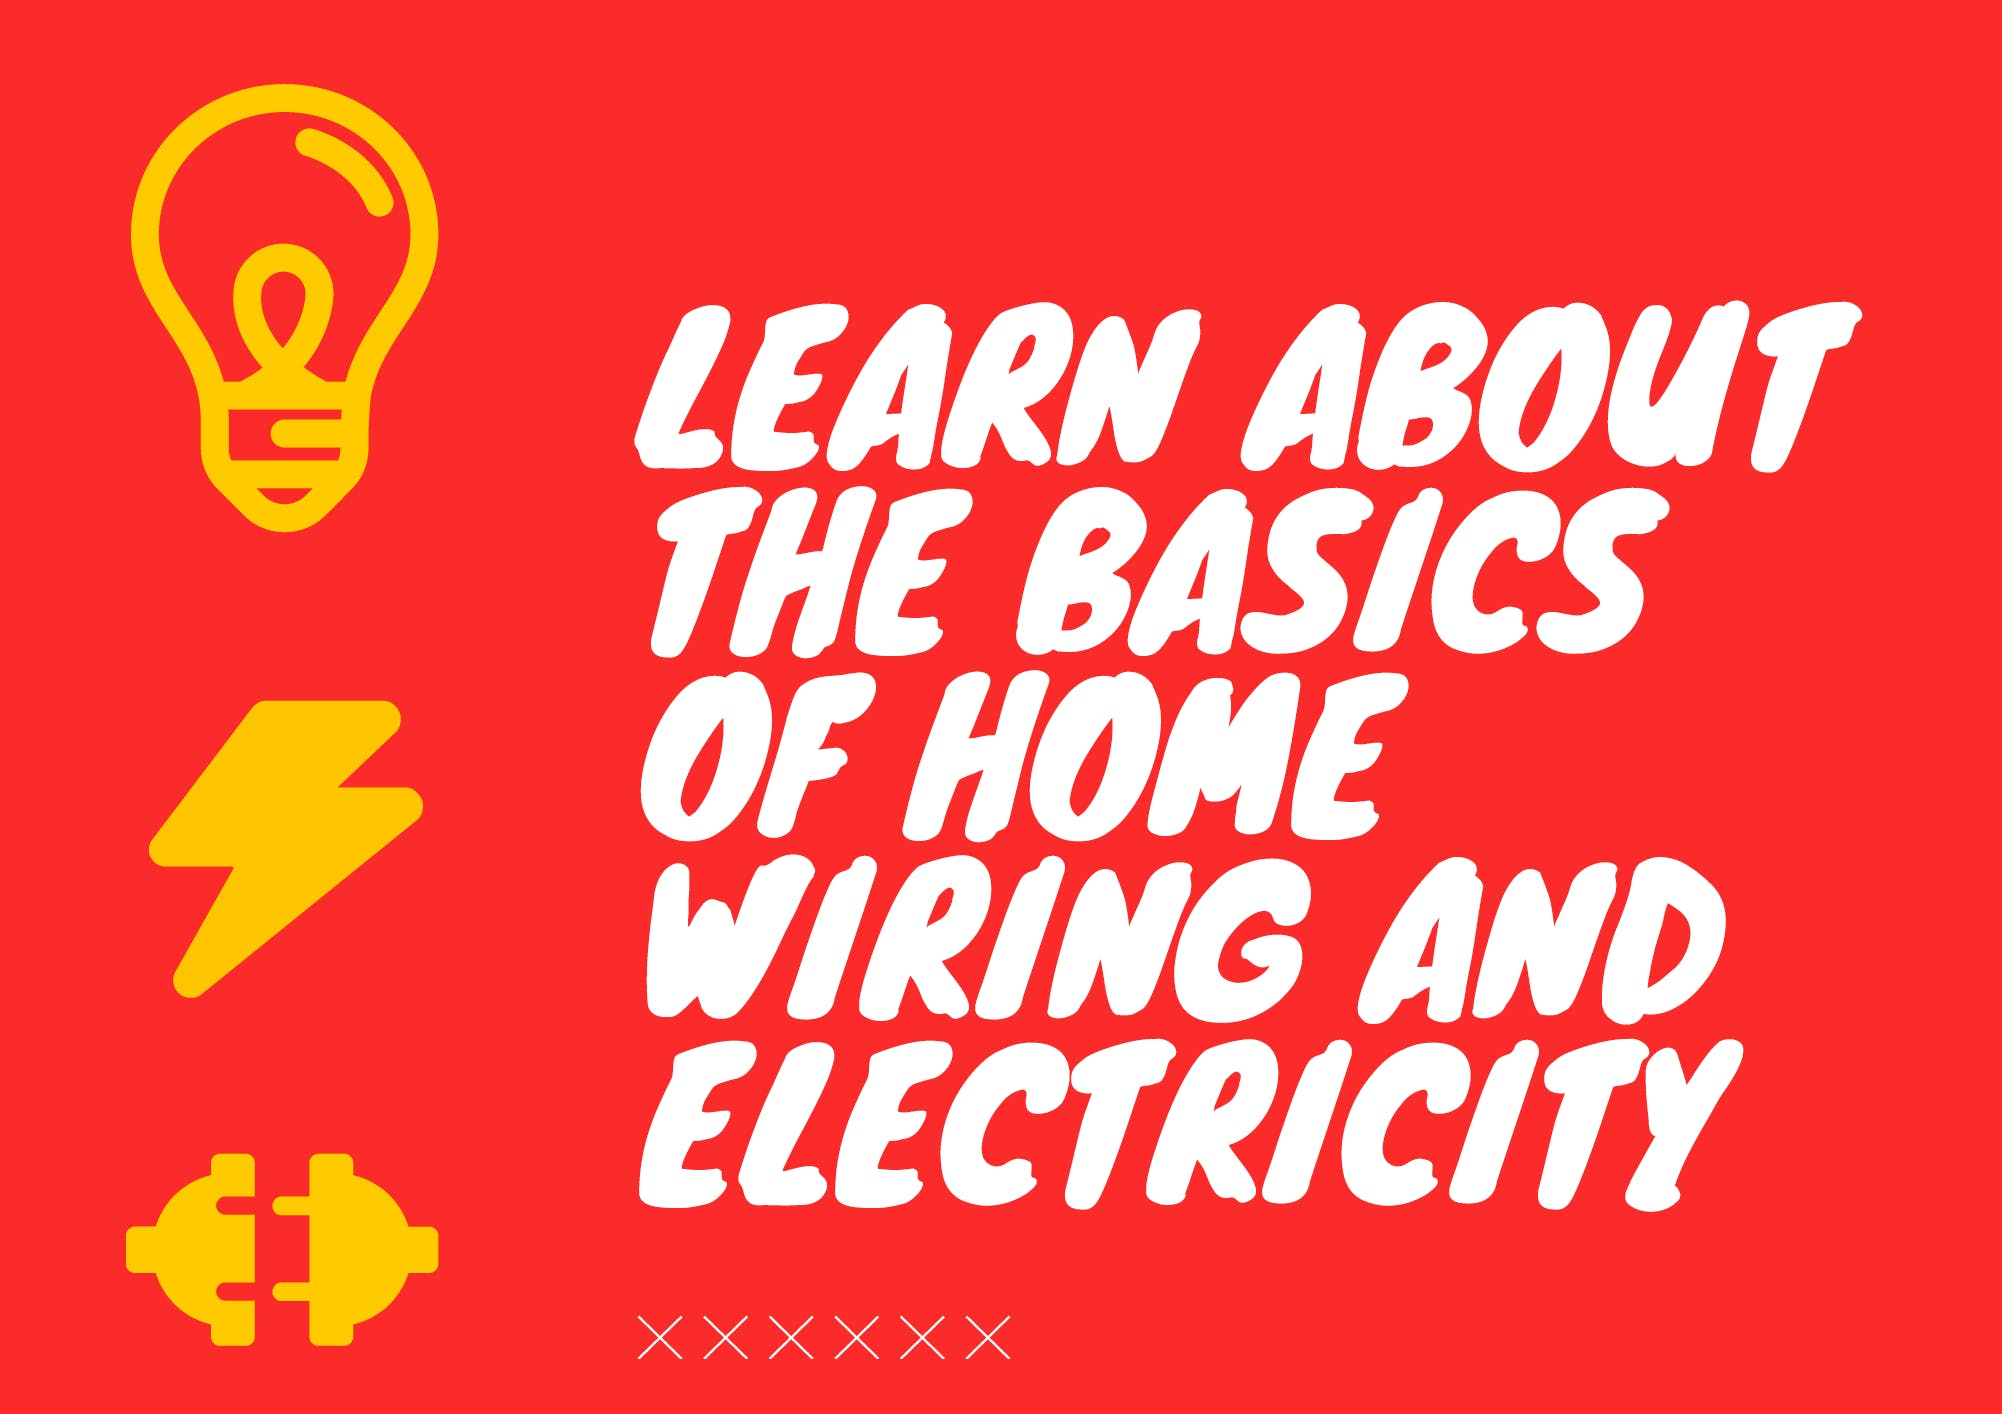 Learn The Basics Of Home Wiring Electricity 26 Nov 2018 Basic Circuit Design